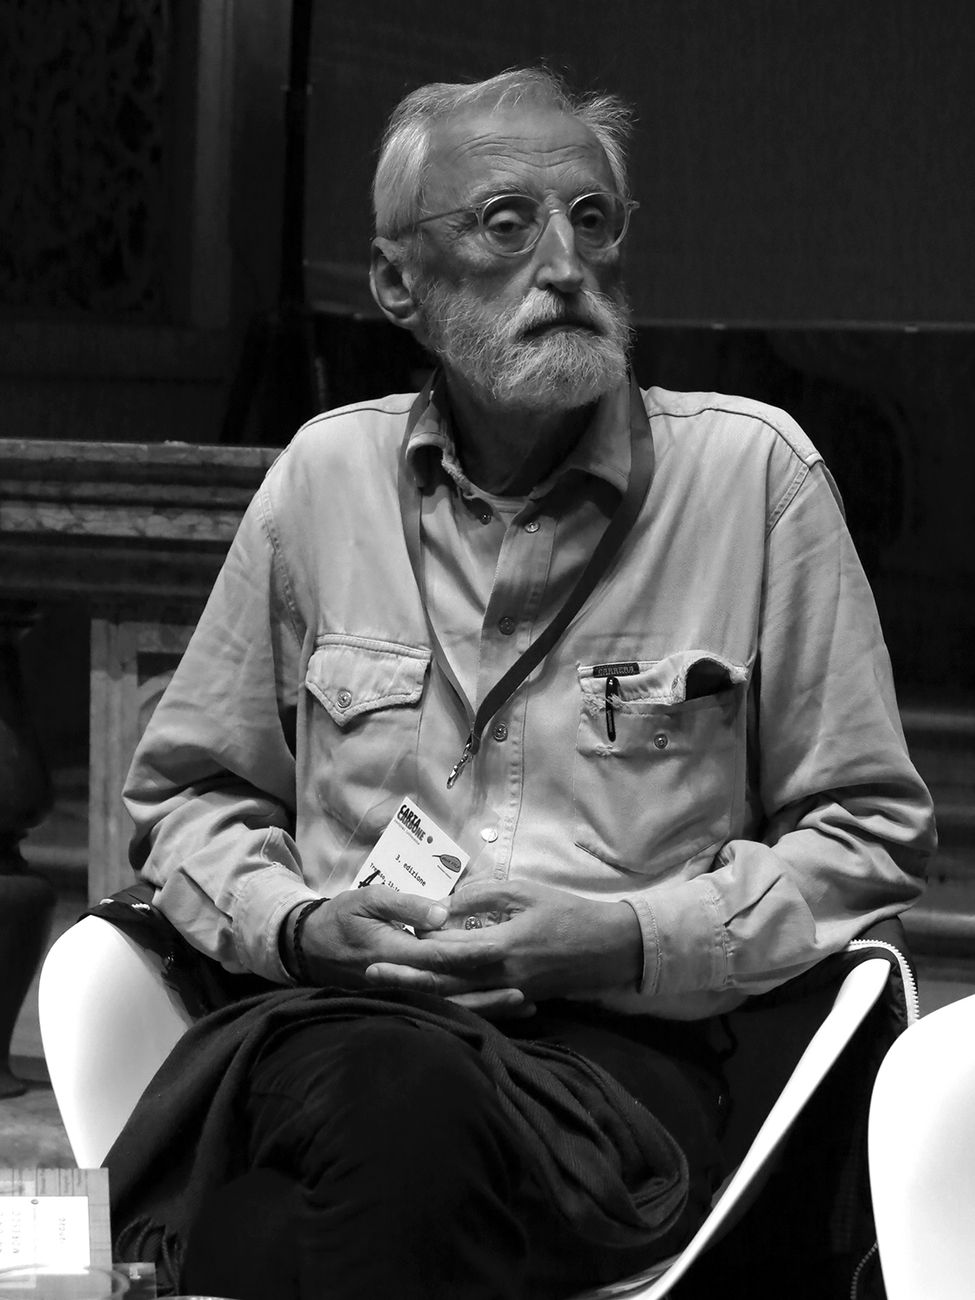 Antonio Moresco. Photo Luigi Tiriticco, 2016 (CC by 2.0 via Flickr)